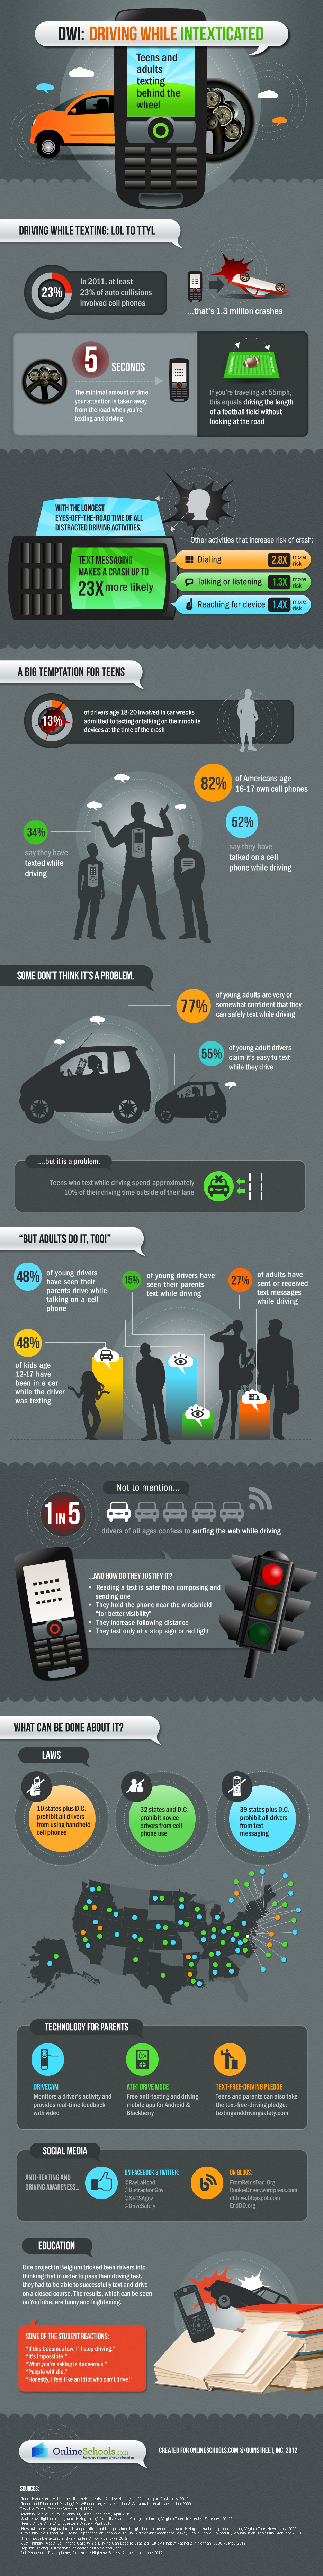 Texting While Driving-infographic